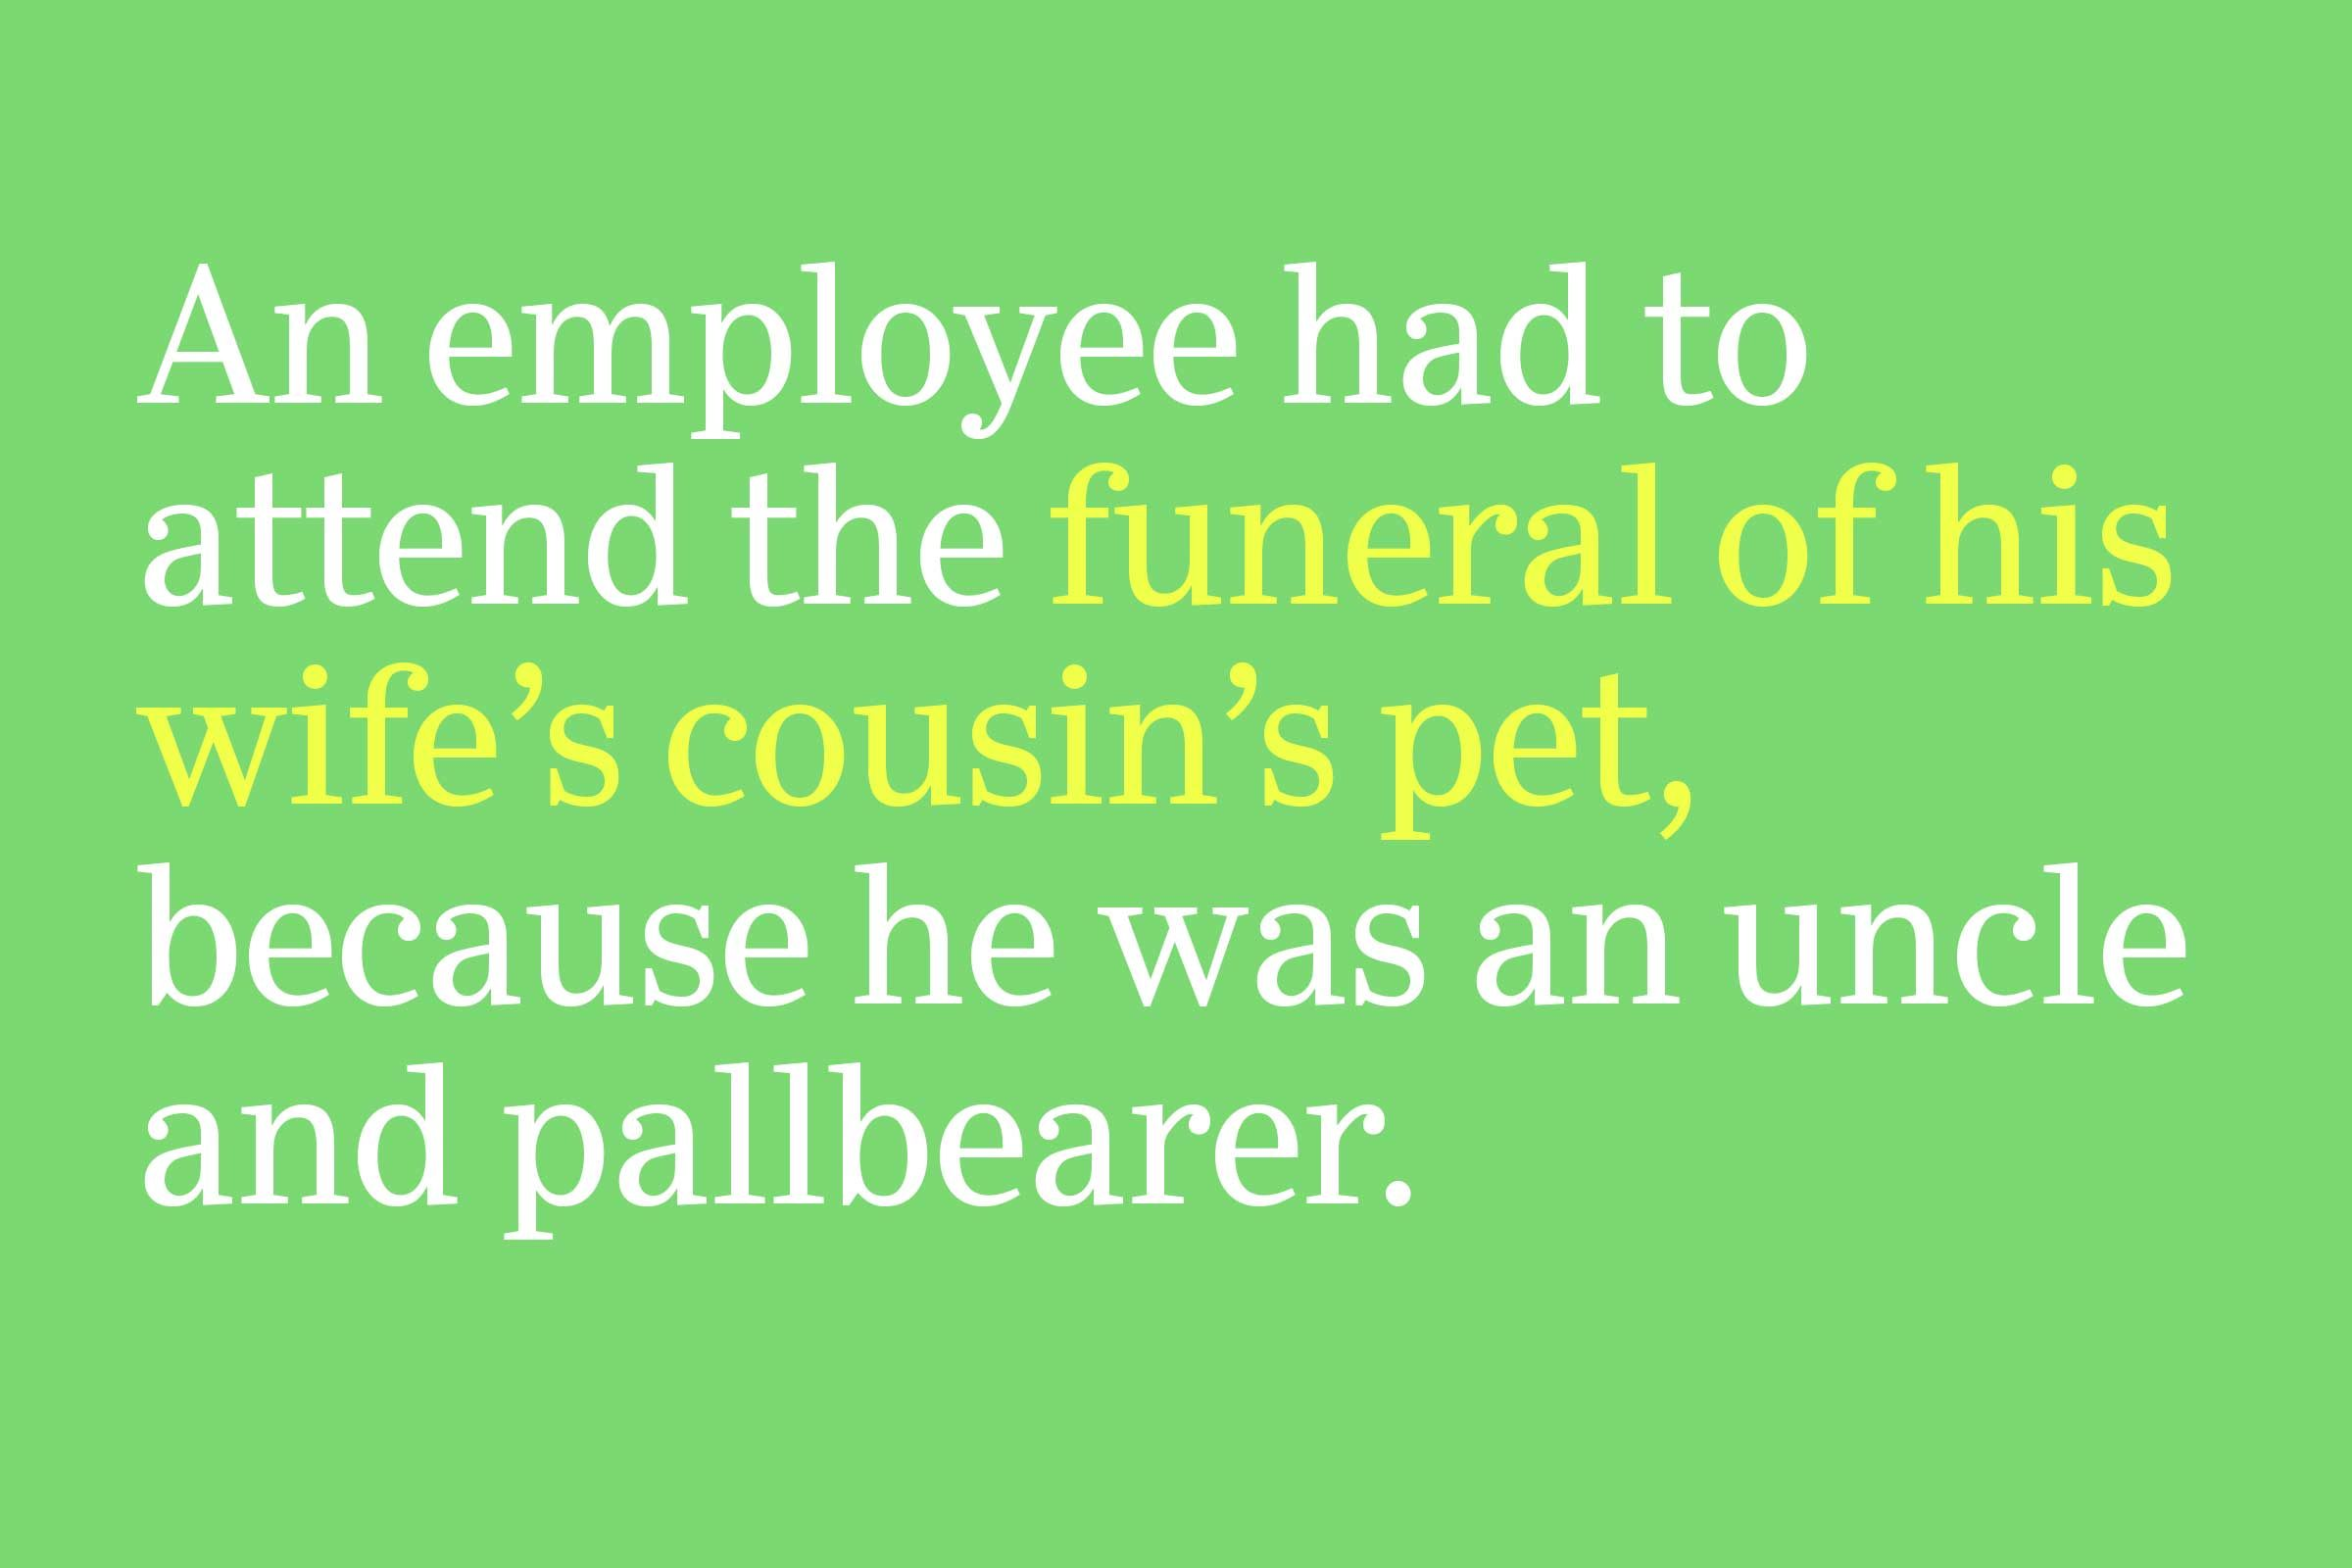 funeral of his wife's cousin's pet